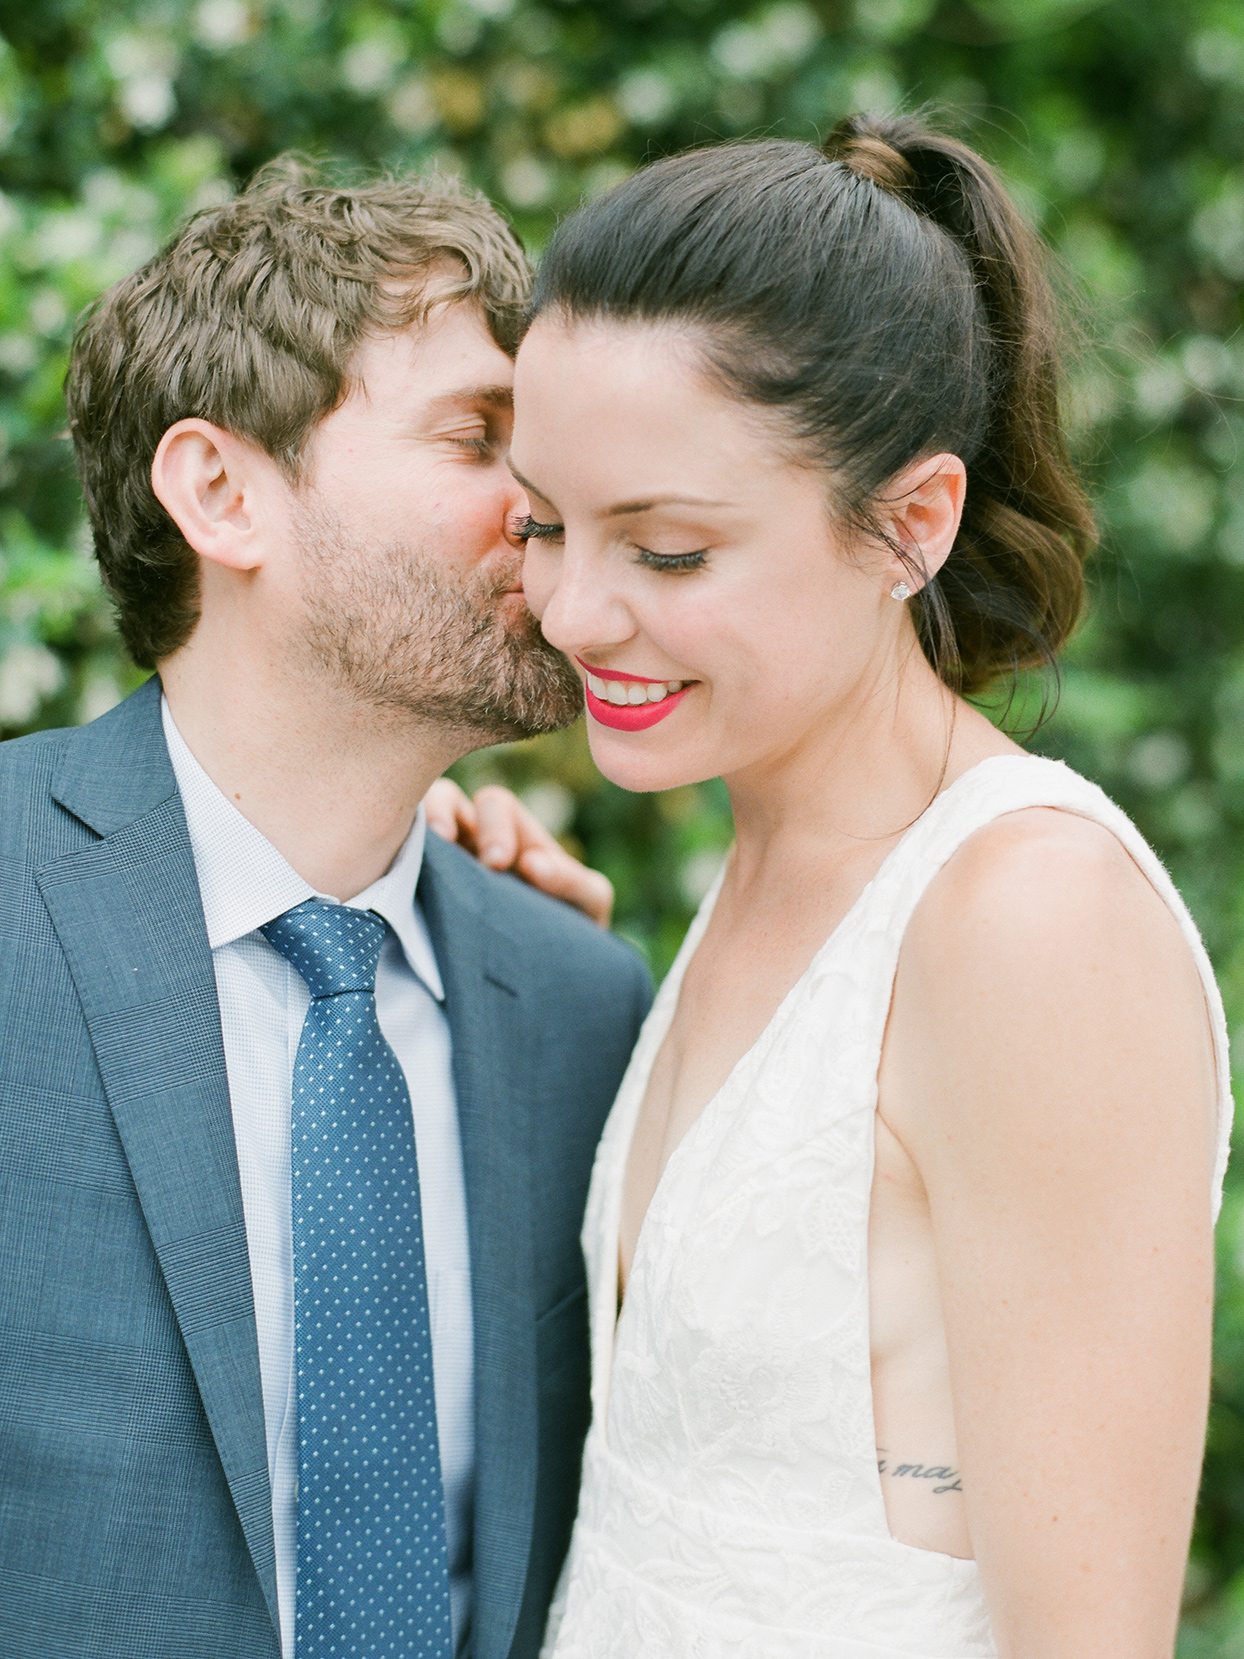 Close up of groom kissing bride